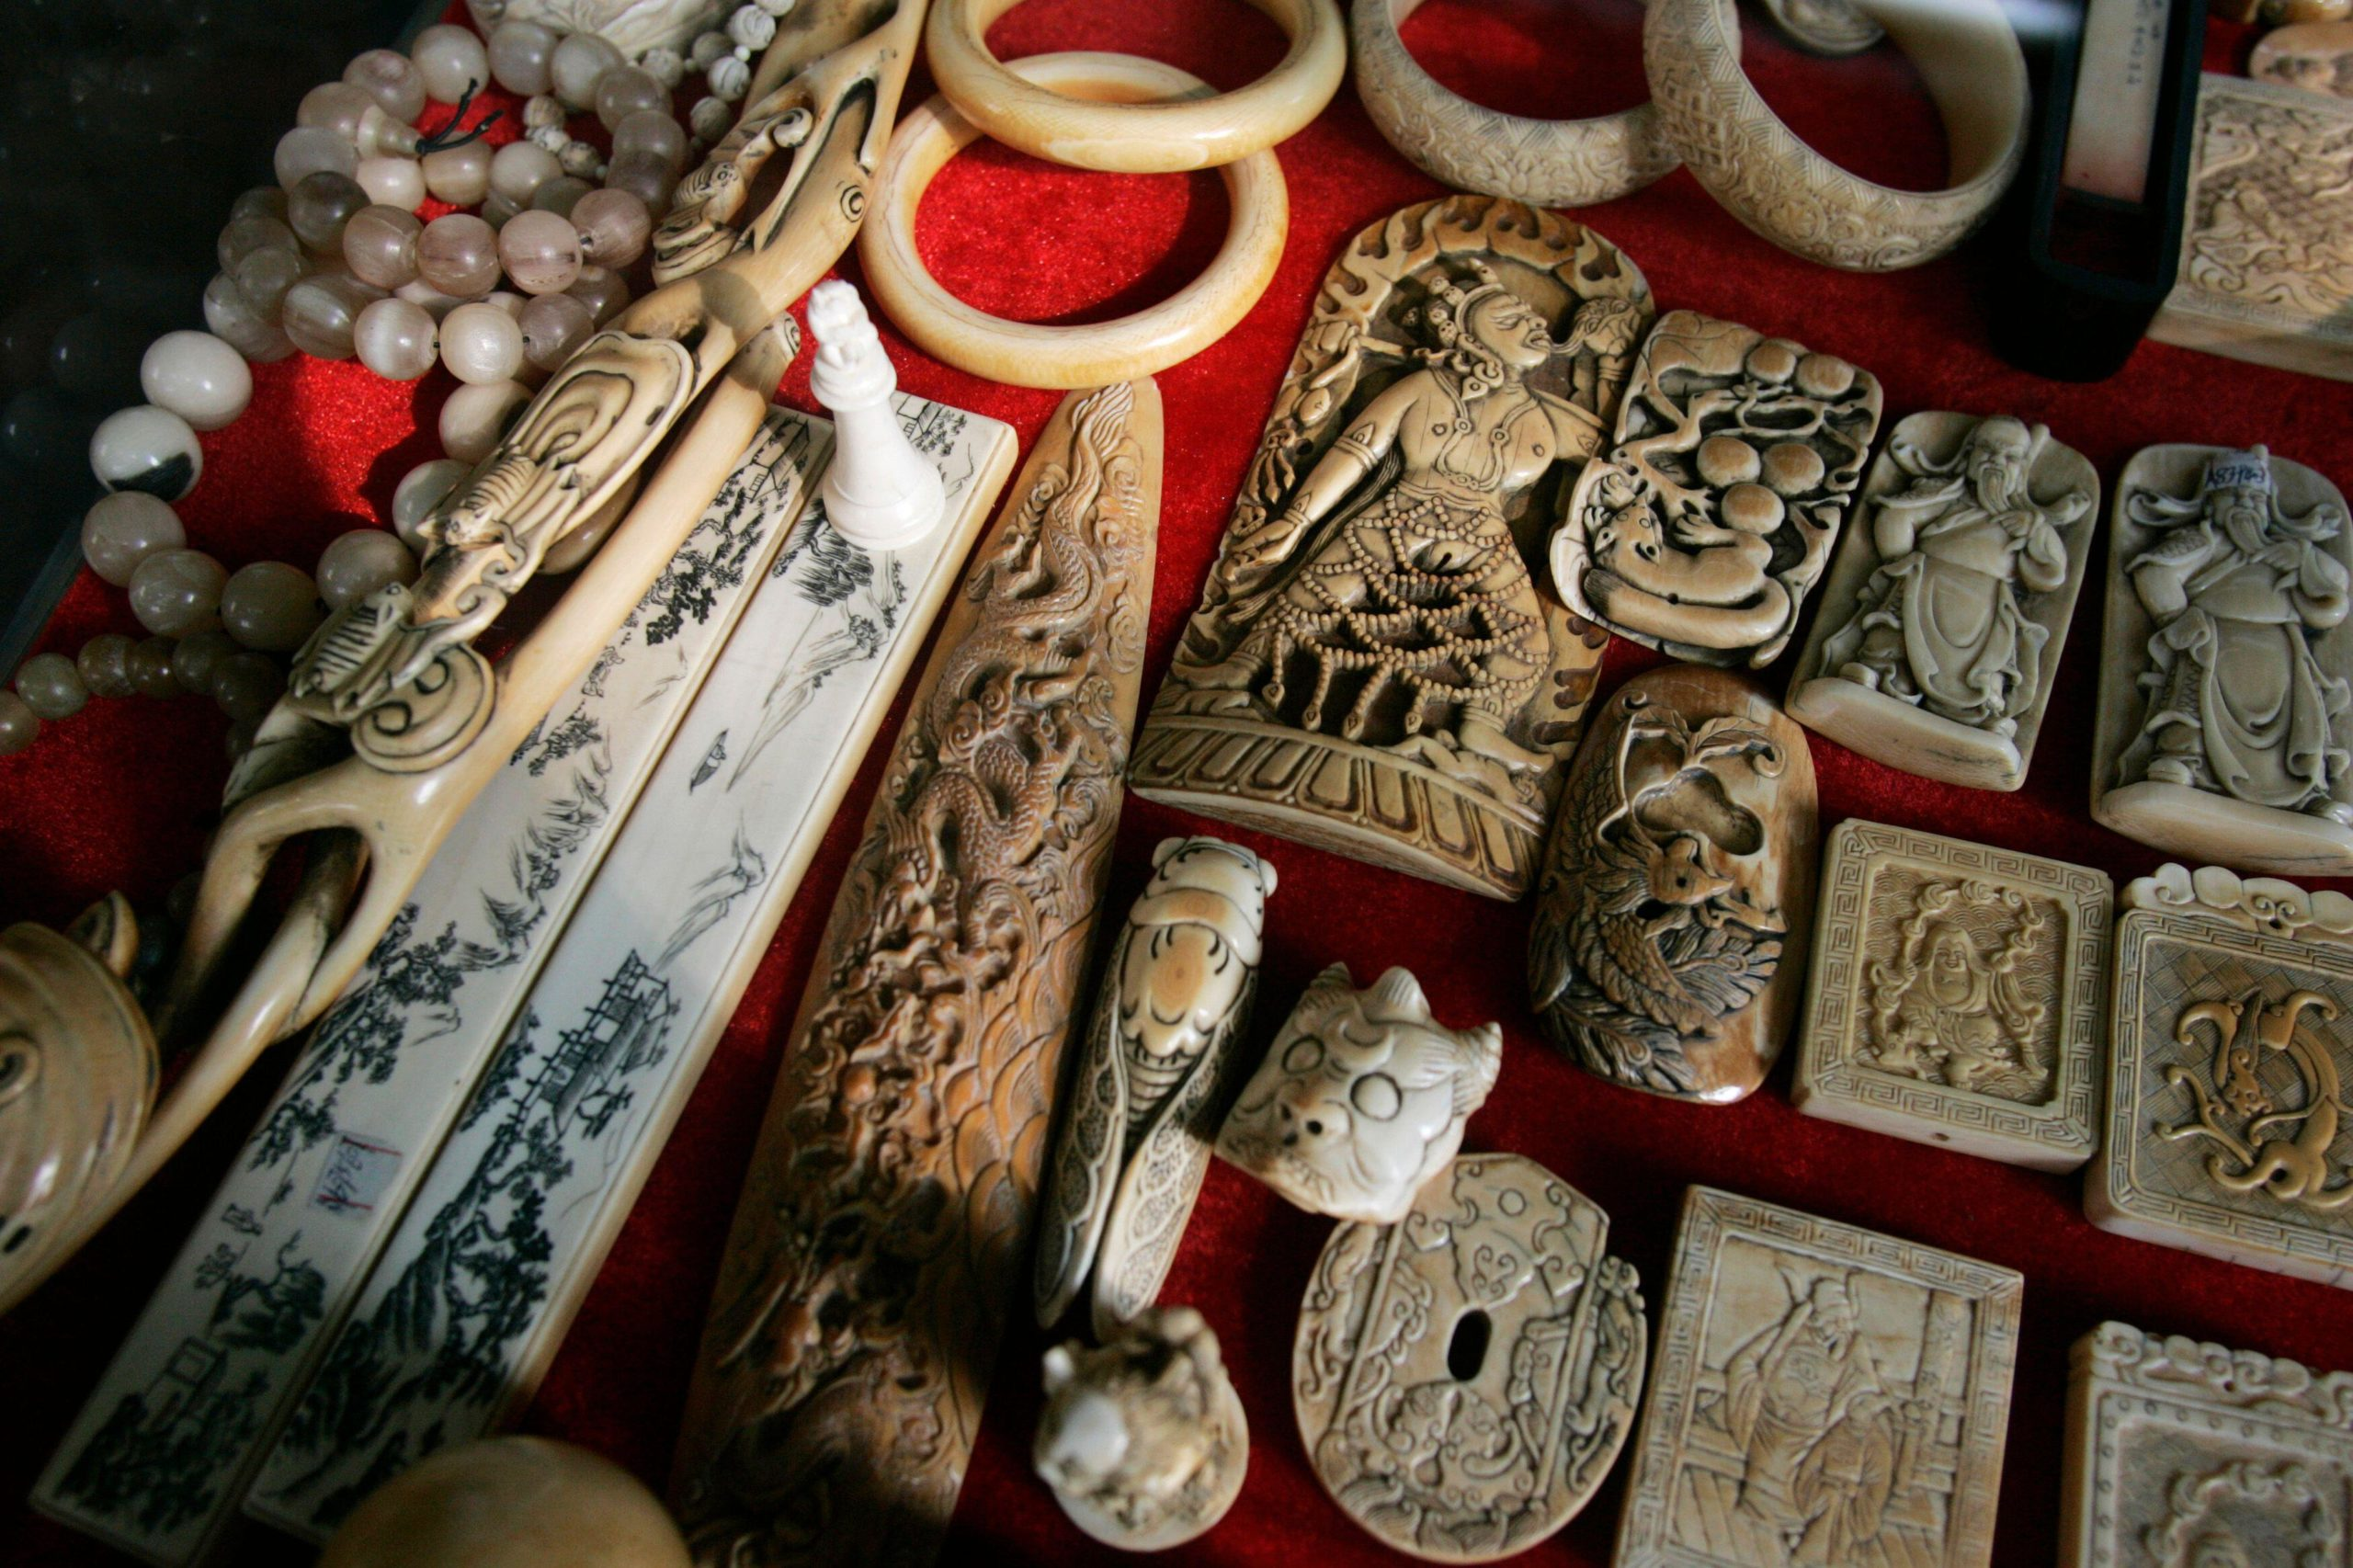 Elephant ivory products displayed at an antique store in Guangzhou, China